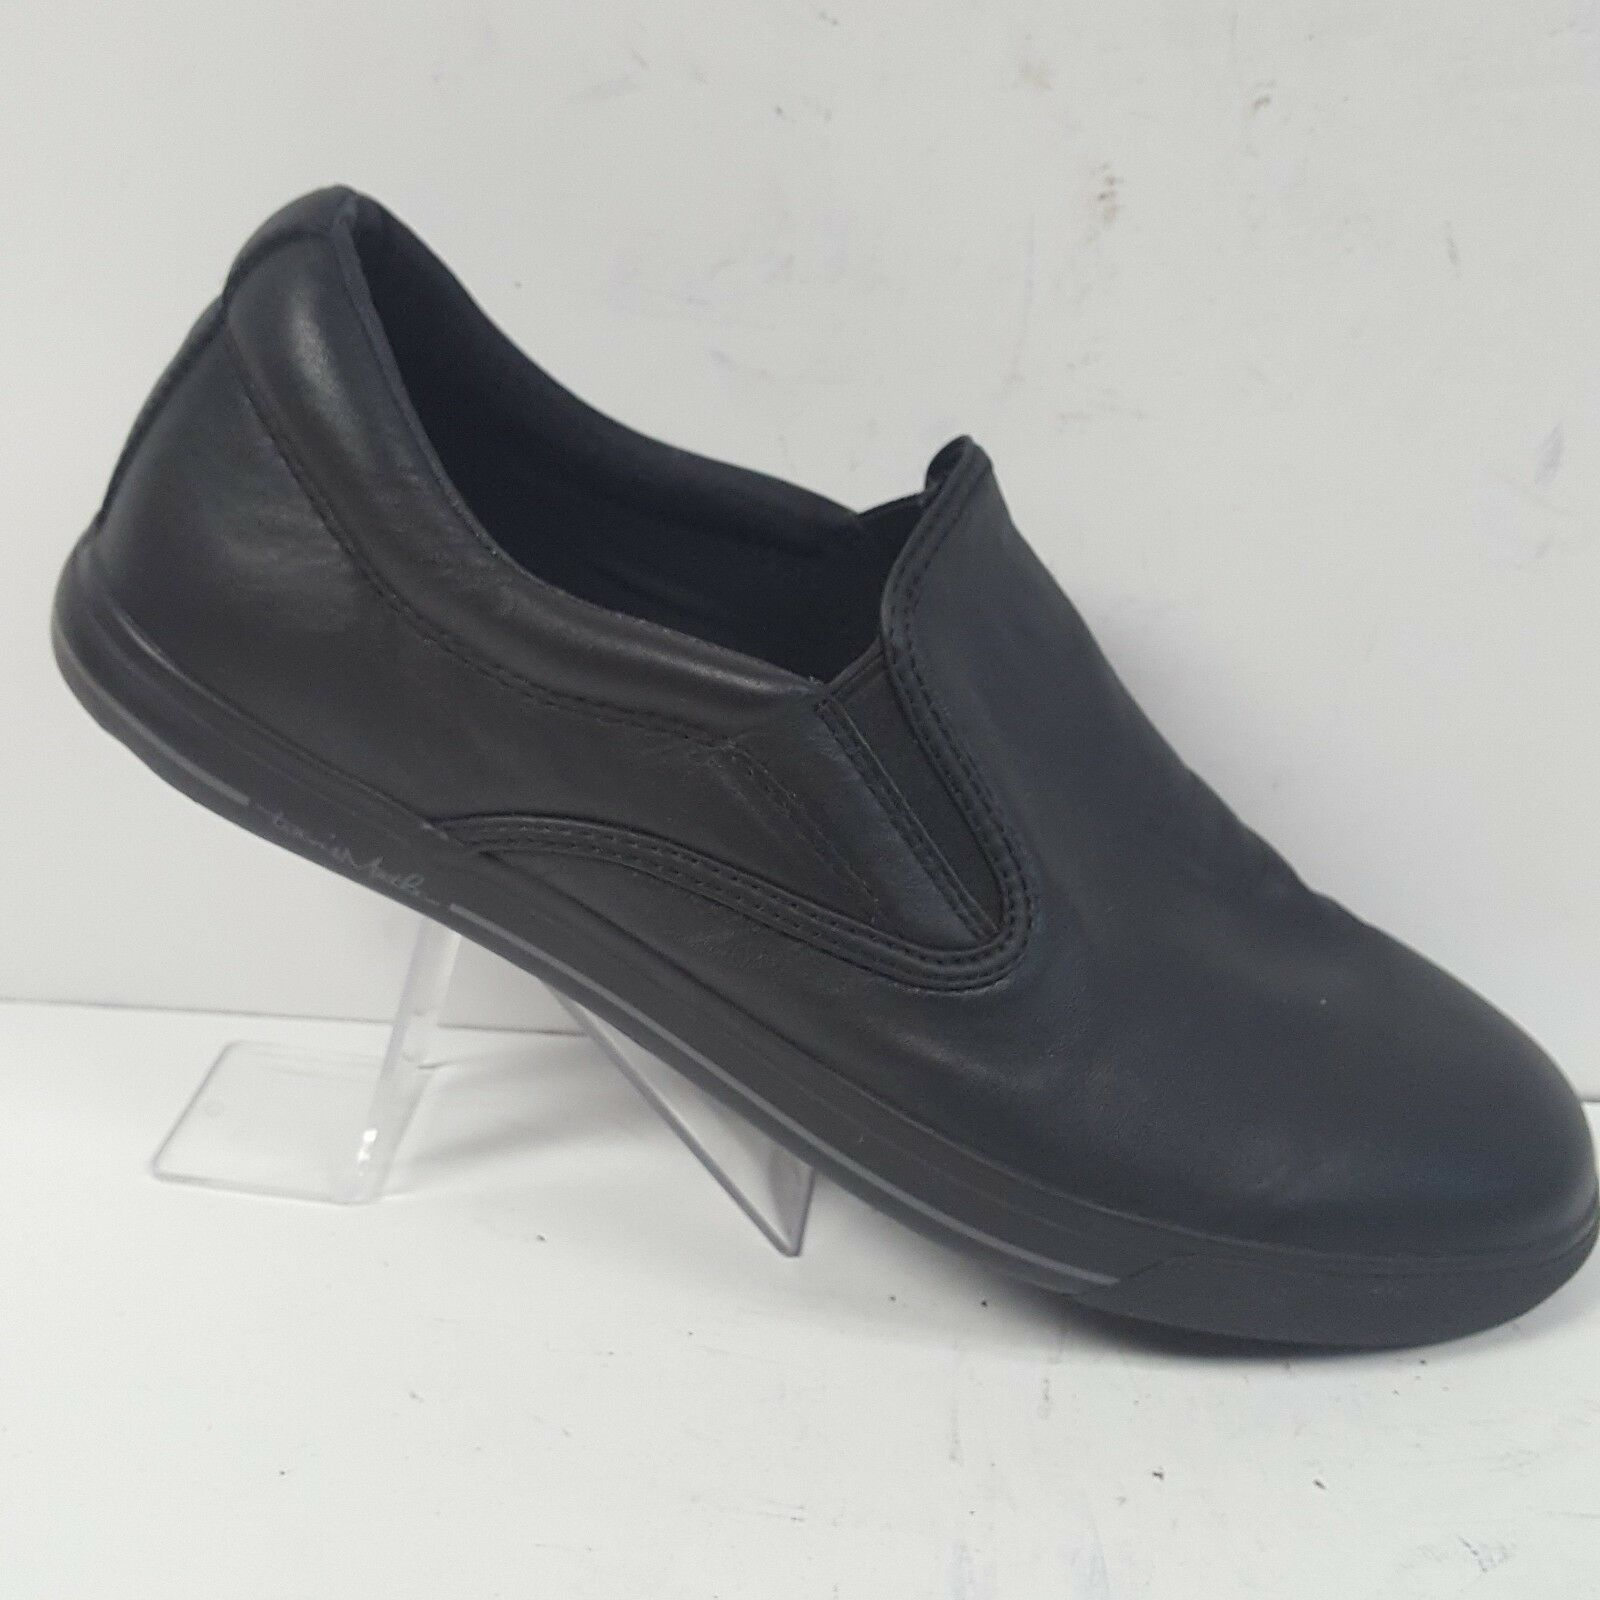 Travis Mathew Raiders Slip On Black Leather Leather Leather Loafers Shoes Mens Size 11 6f1779